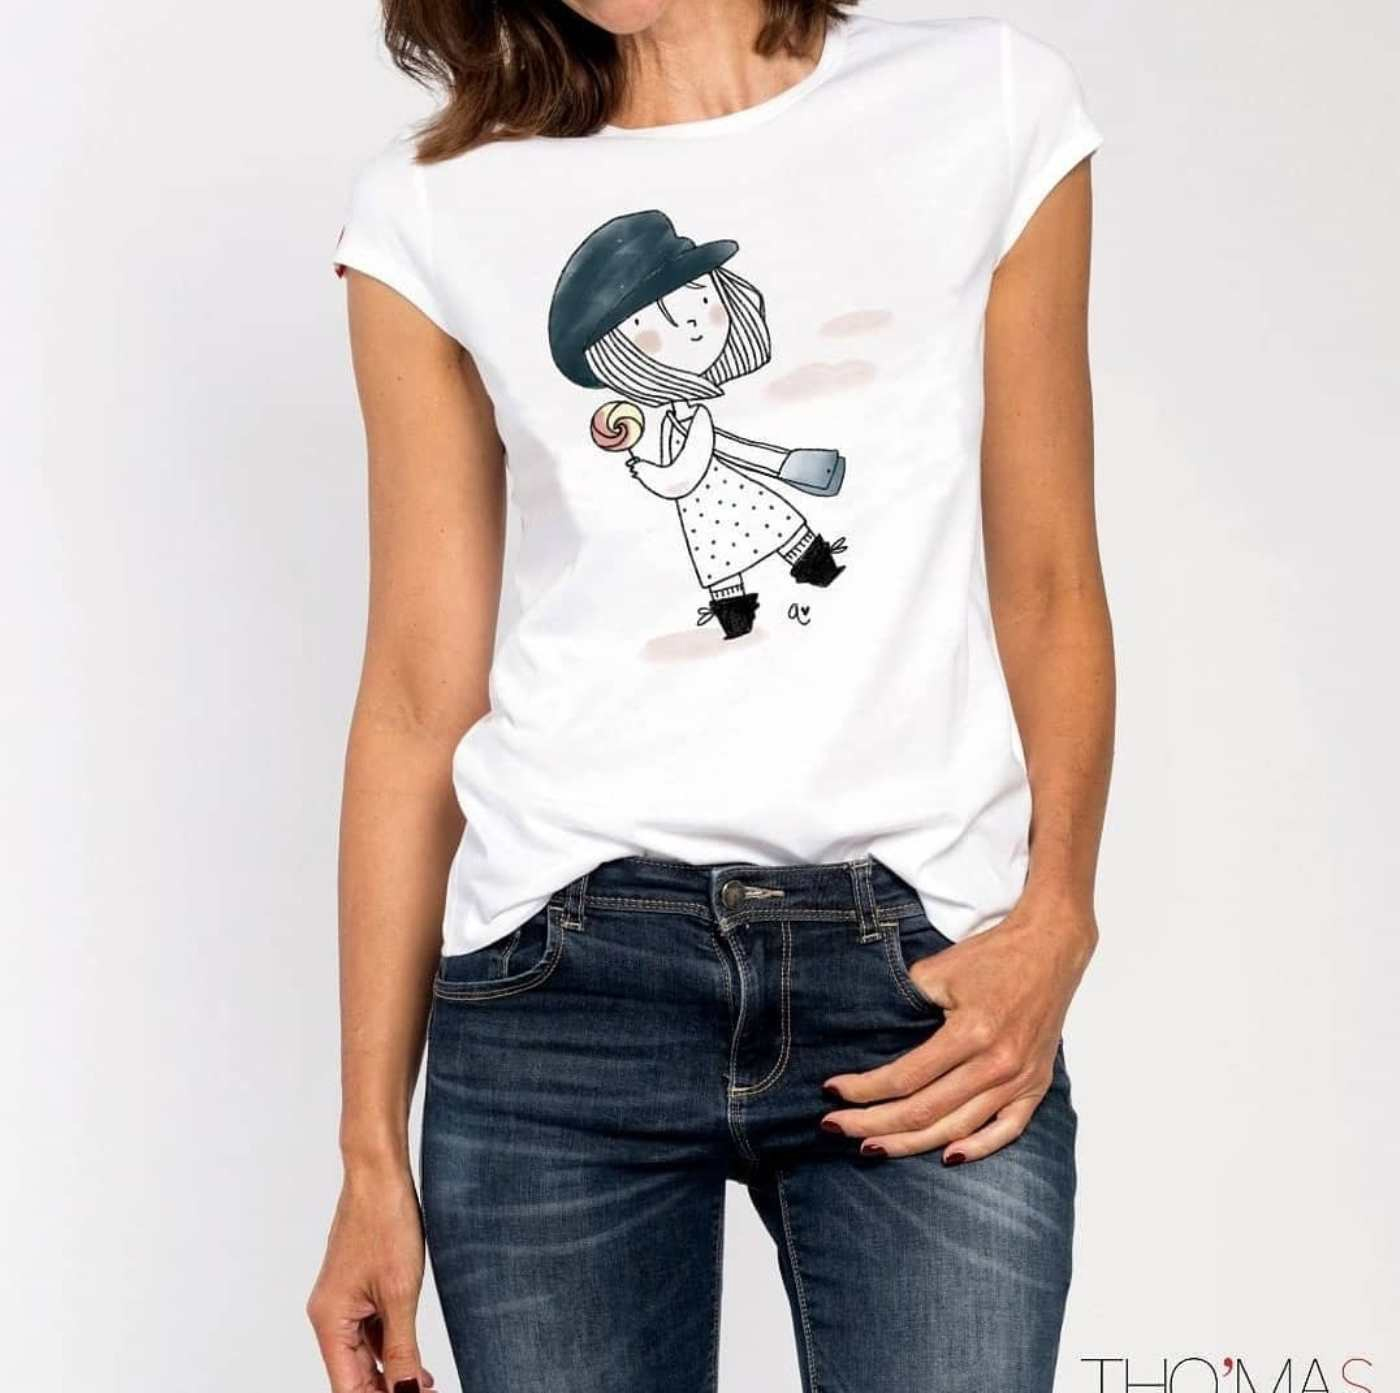 Illustrations of a Girl Painting on T Shirt